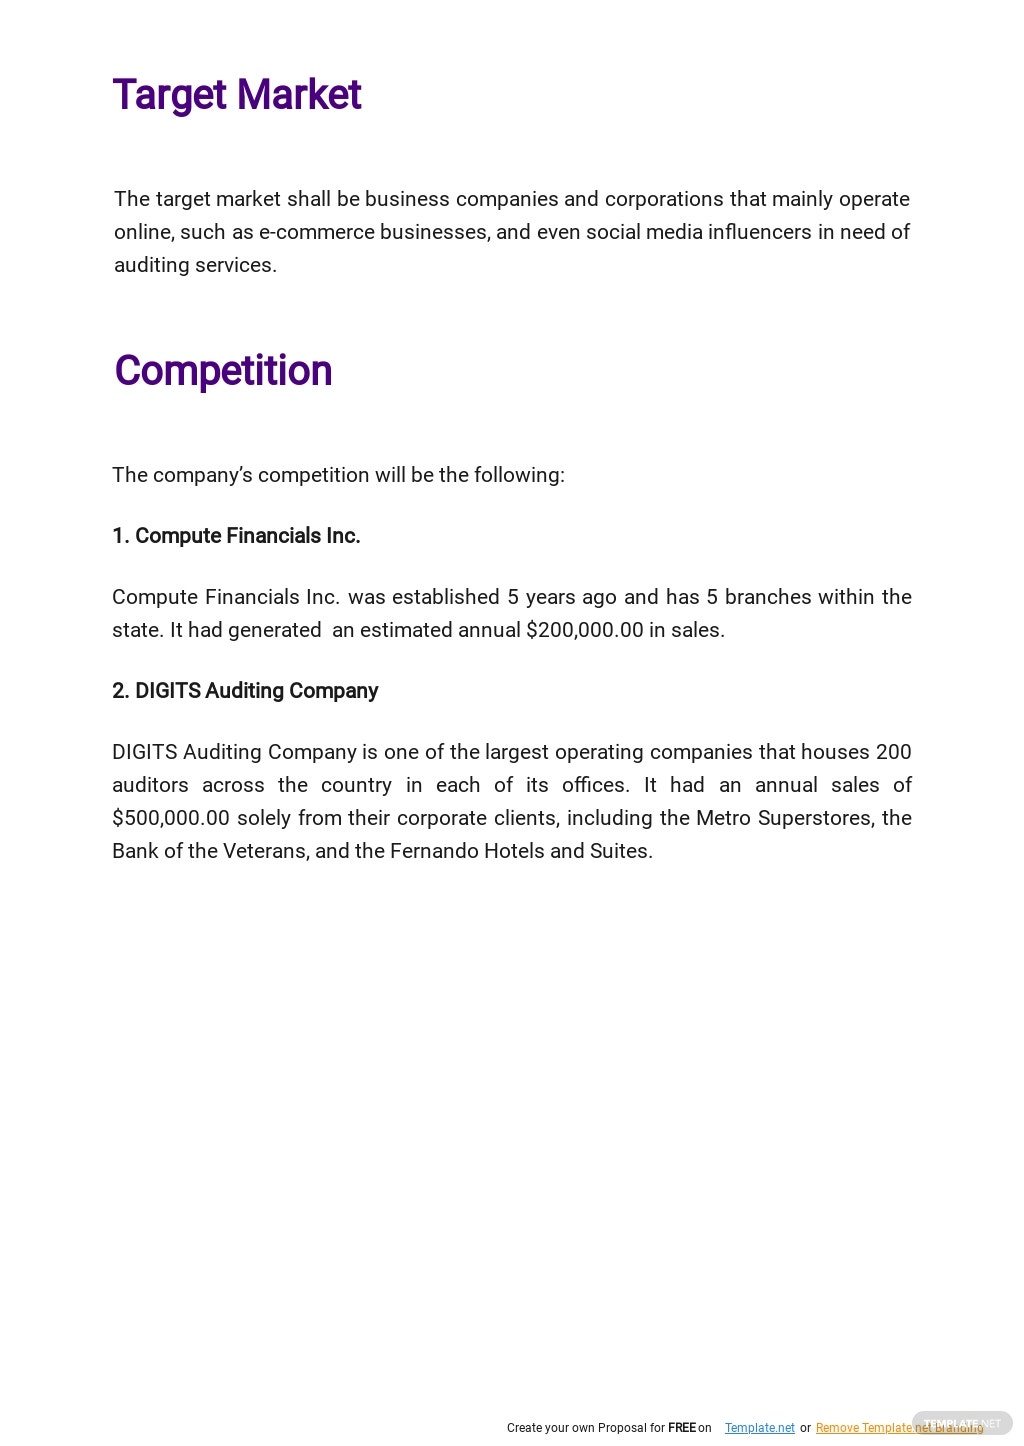 Auditing and Consulting Business Plan Template 2.jpe